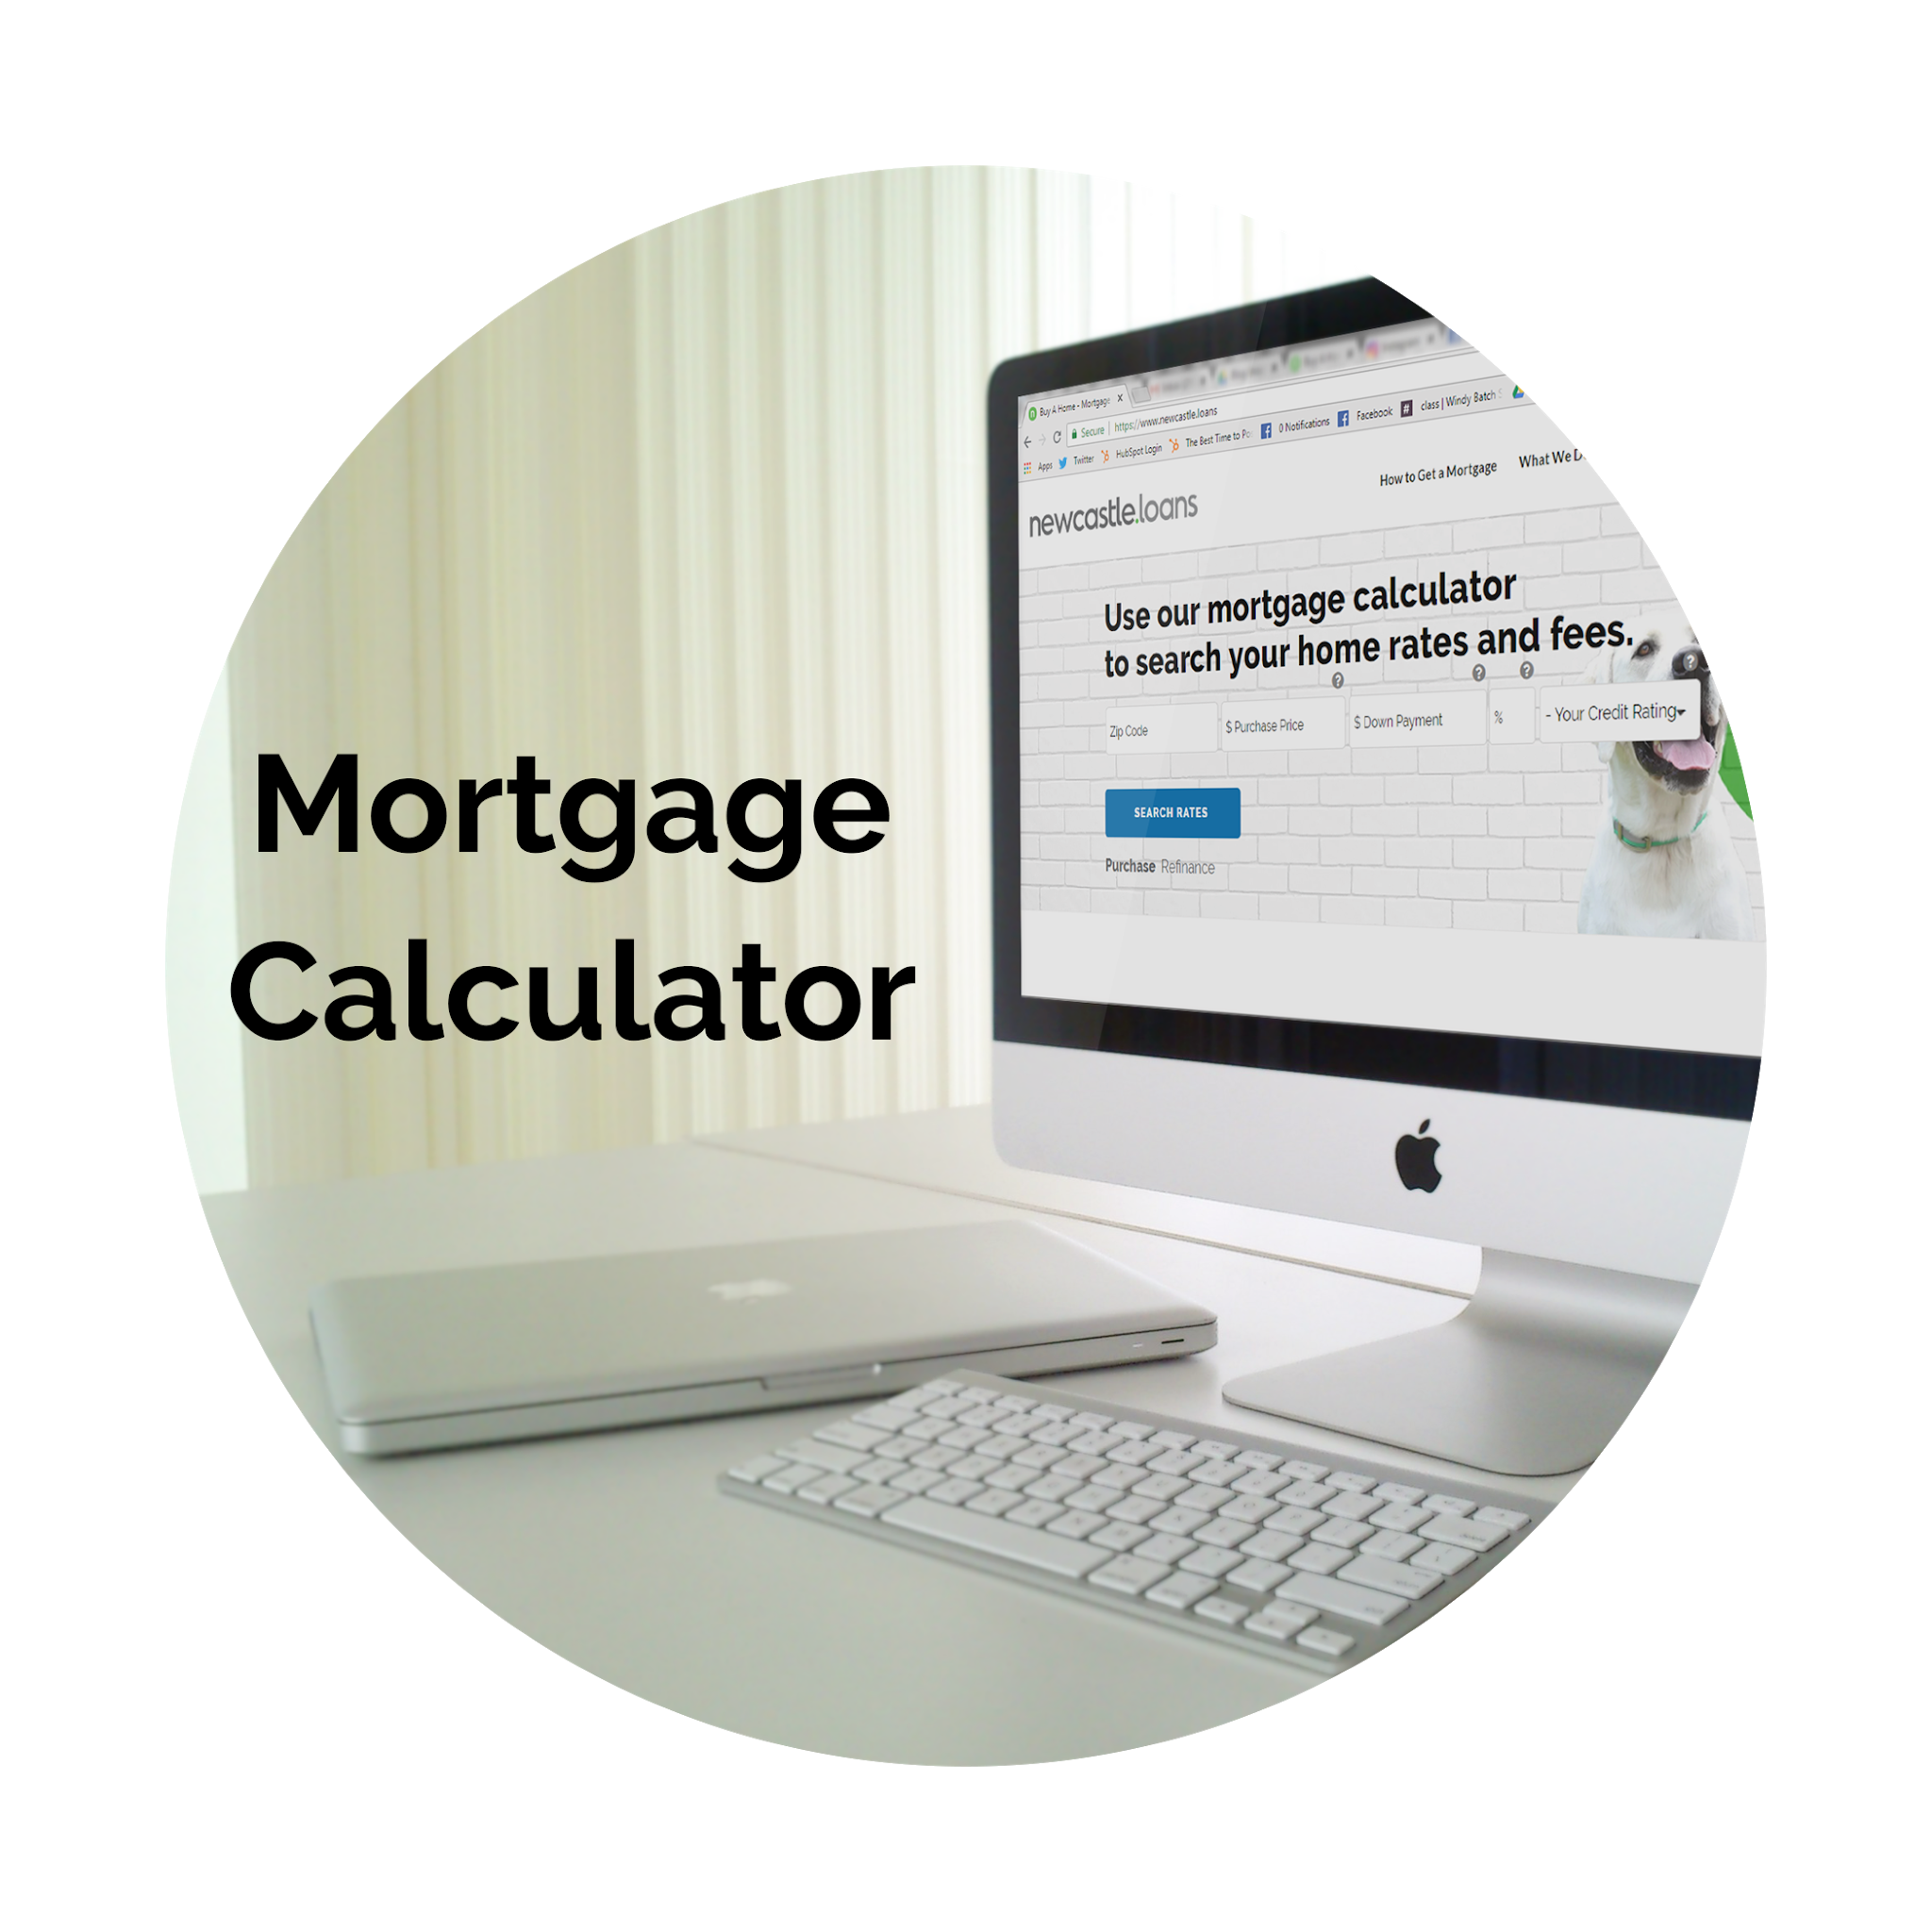 Mortgage Calculator